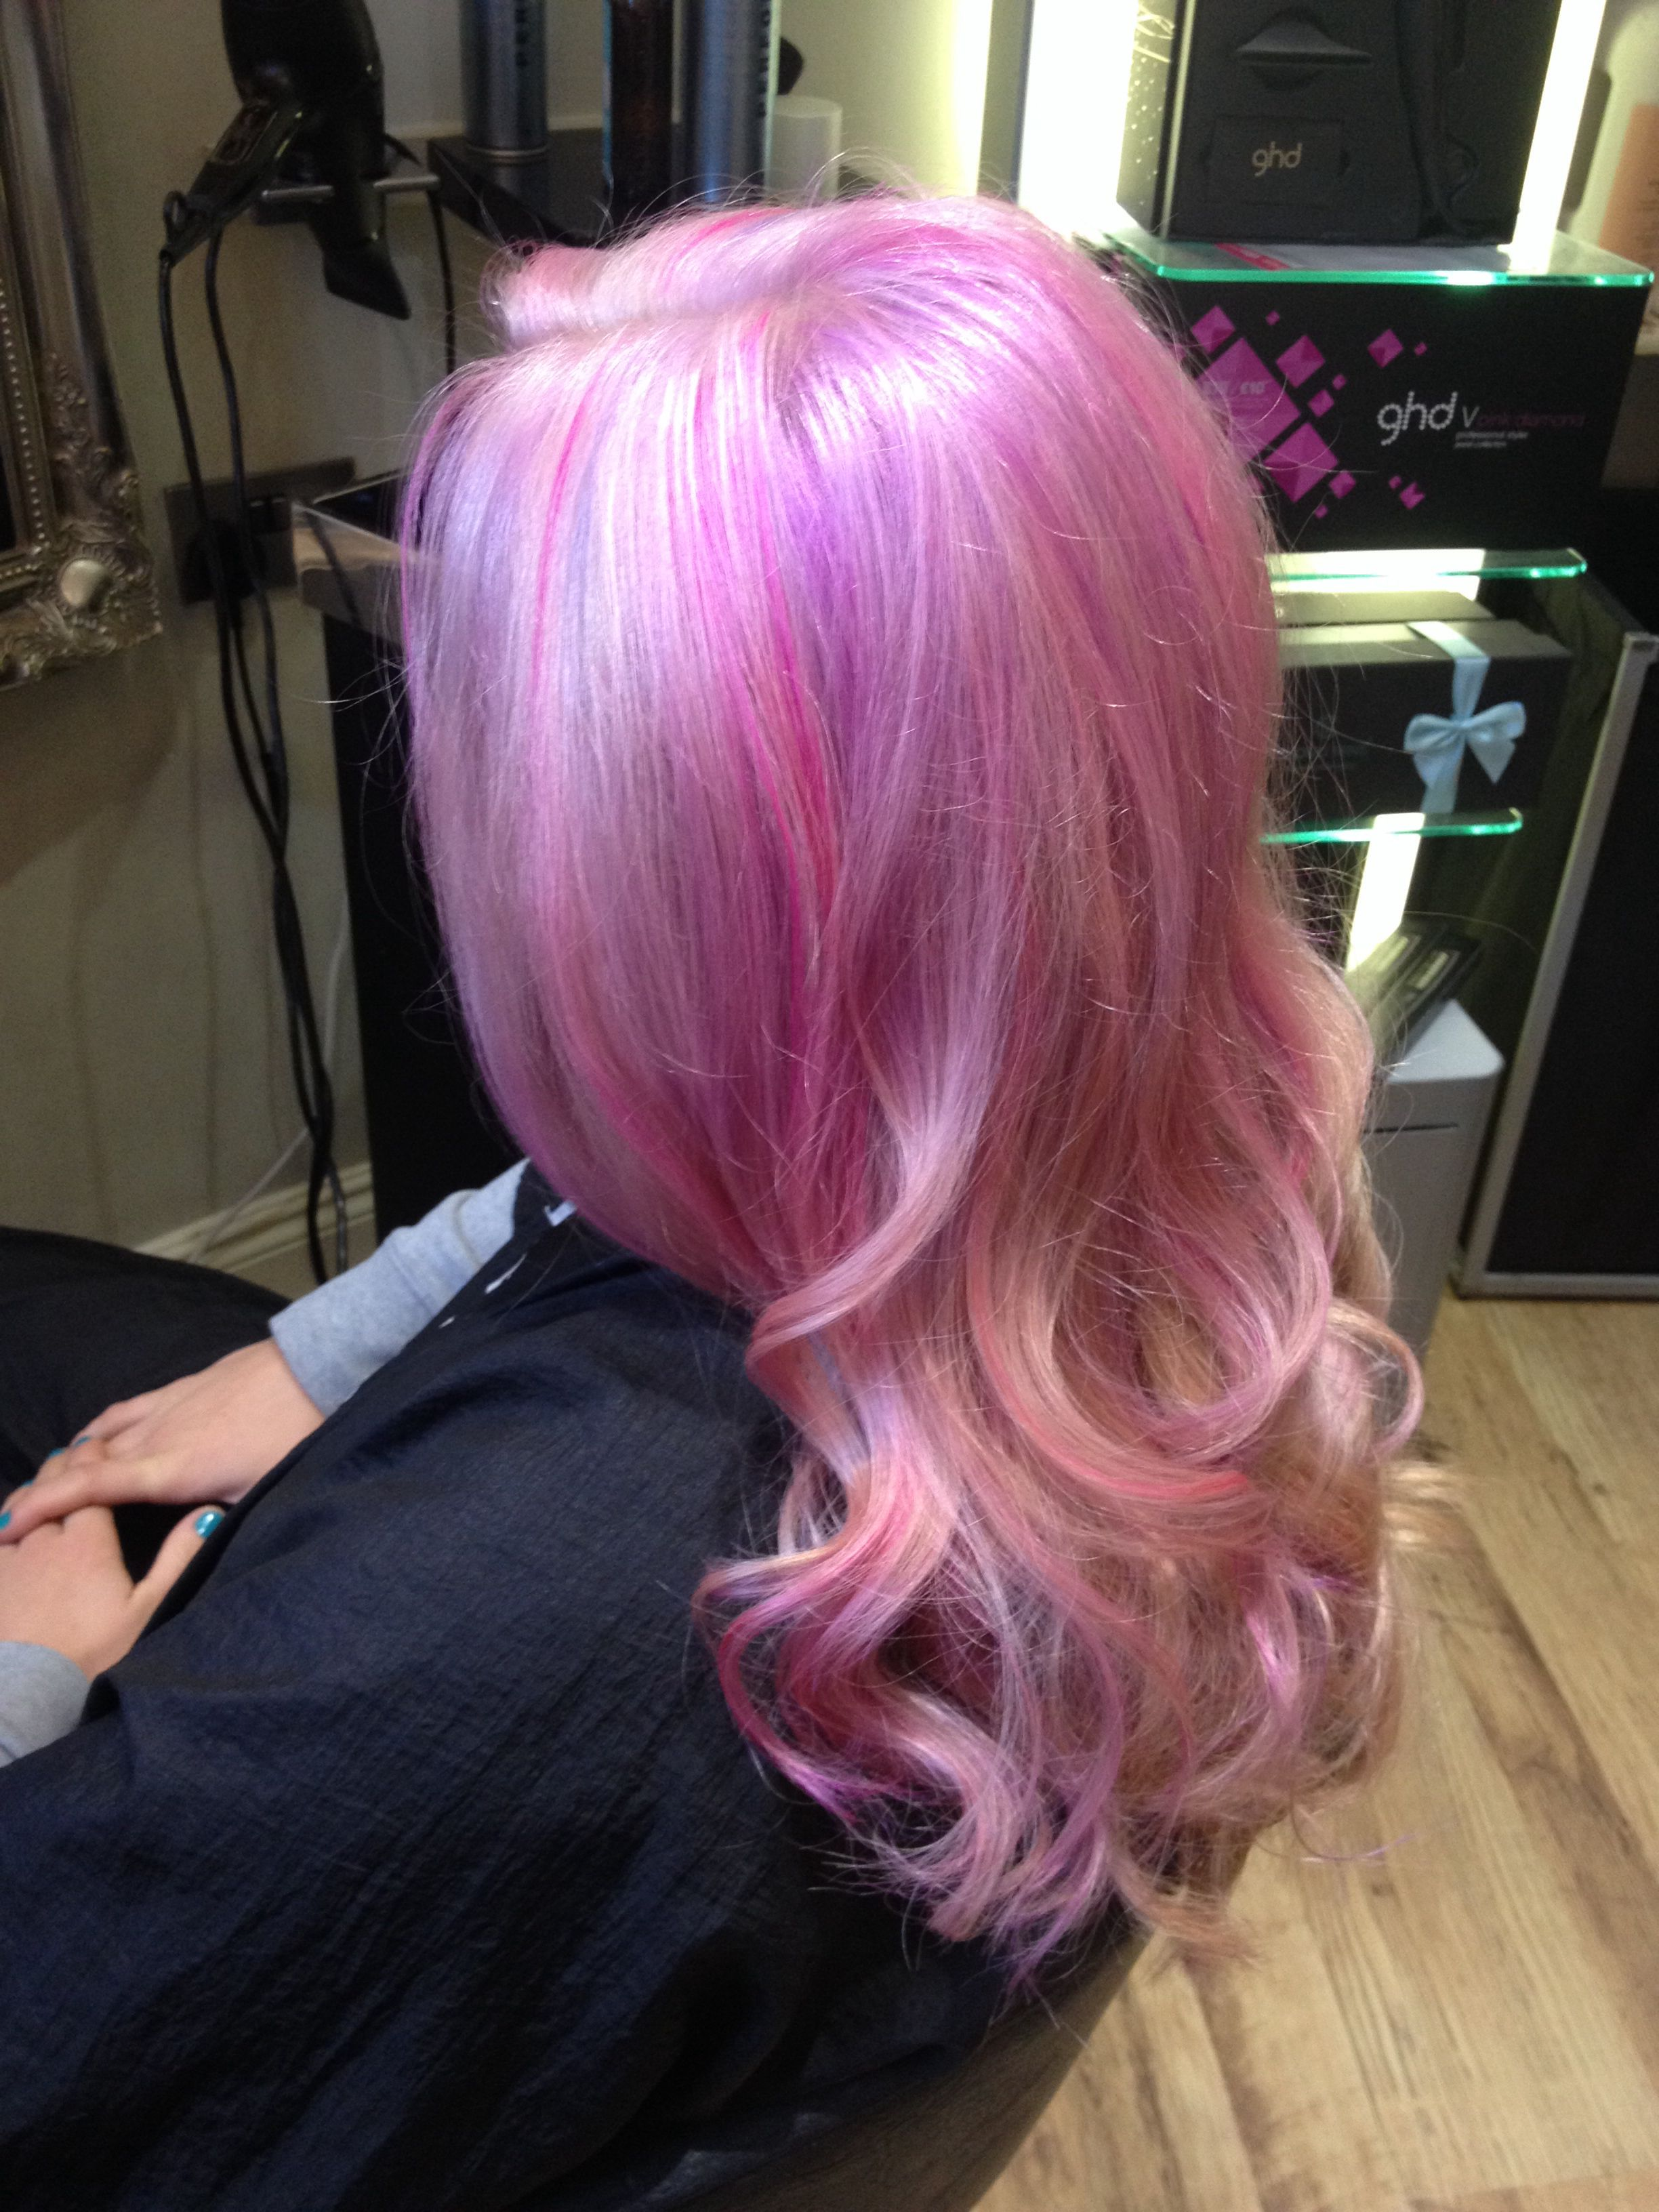 Lavender Lilac Pink Pastel Highlighted Blonde Hair Using Fudge Paint